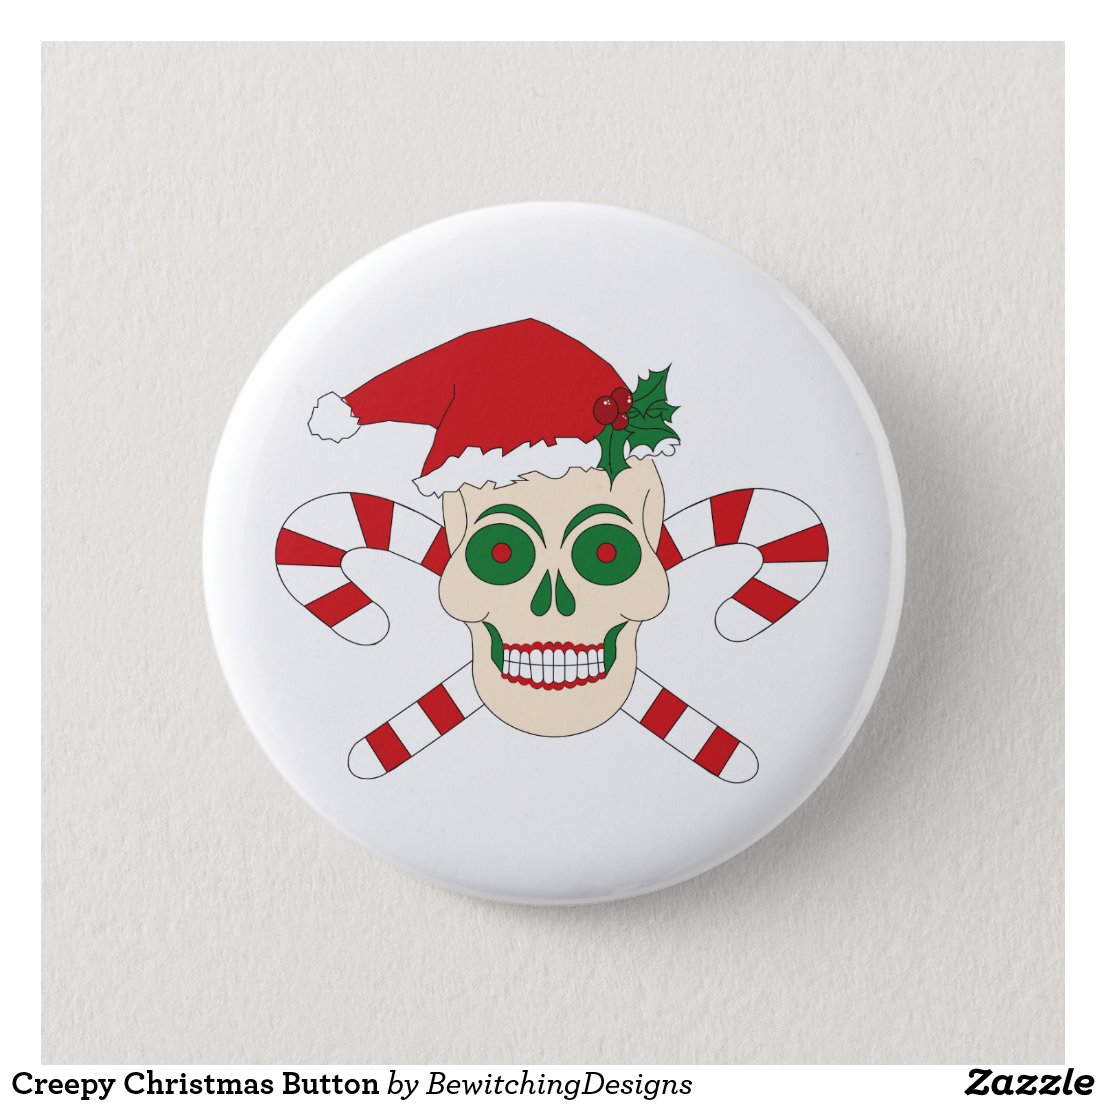 Creepy Christmas Button